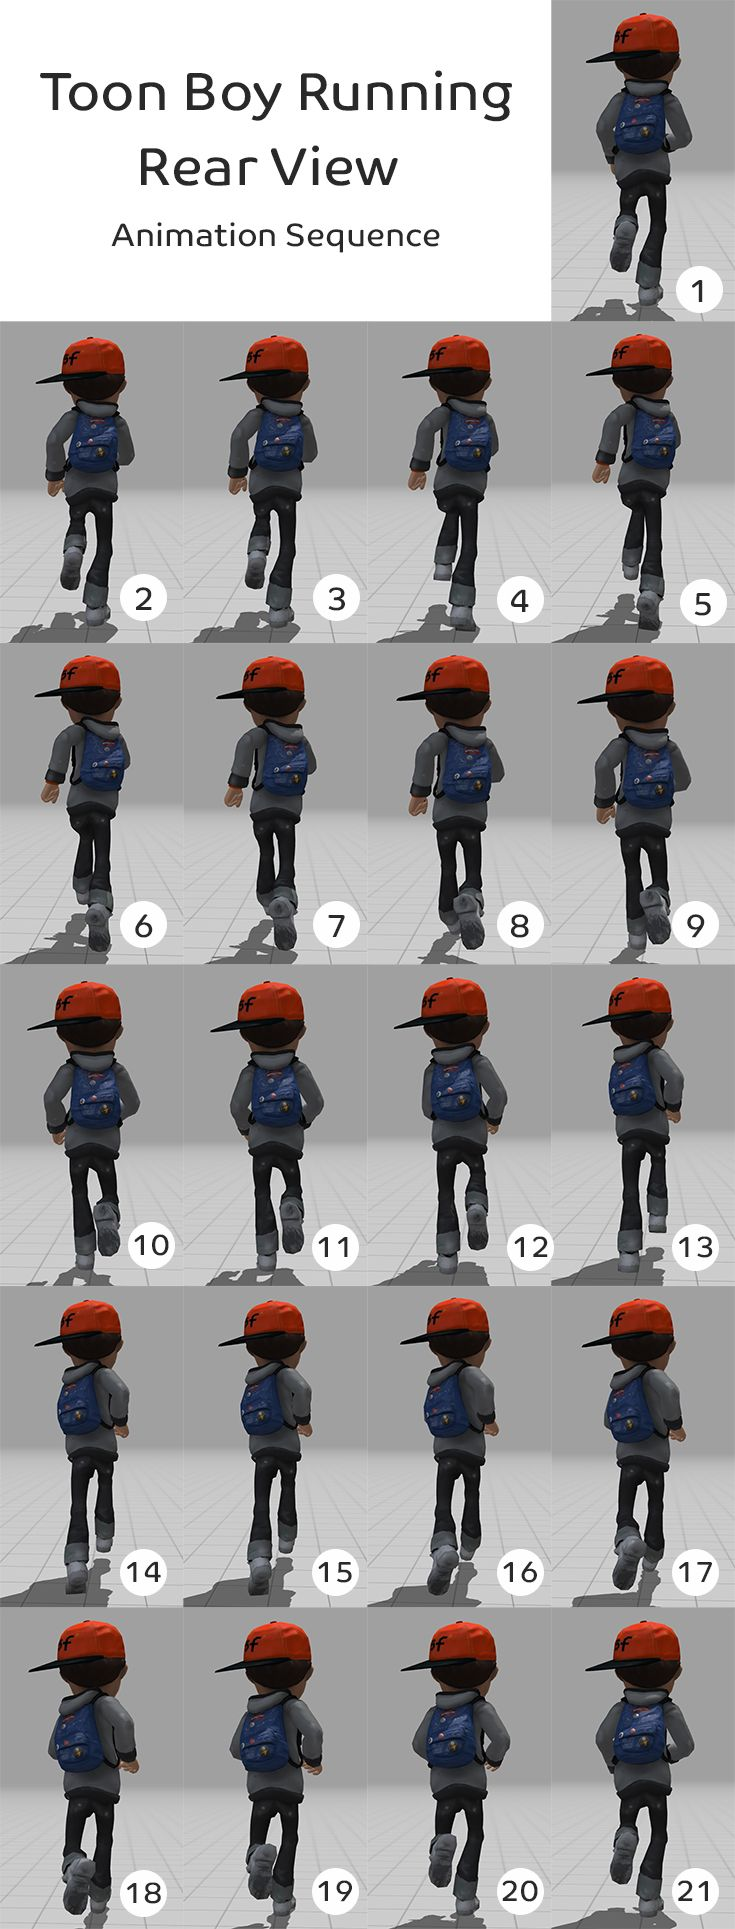 Boy Running Rear View Animation Sequence Maximo Character Cool Drawings Animation Character Design